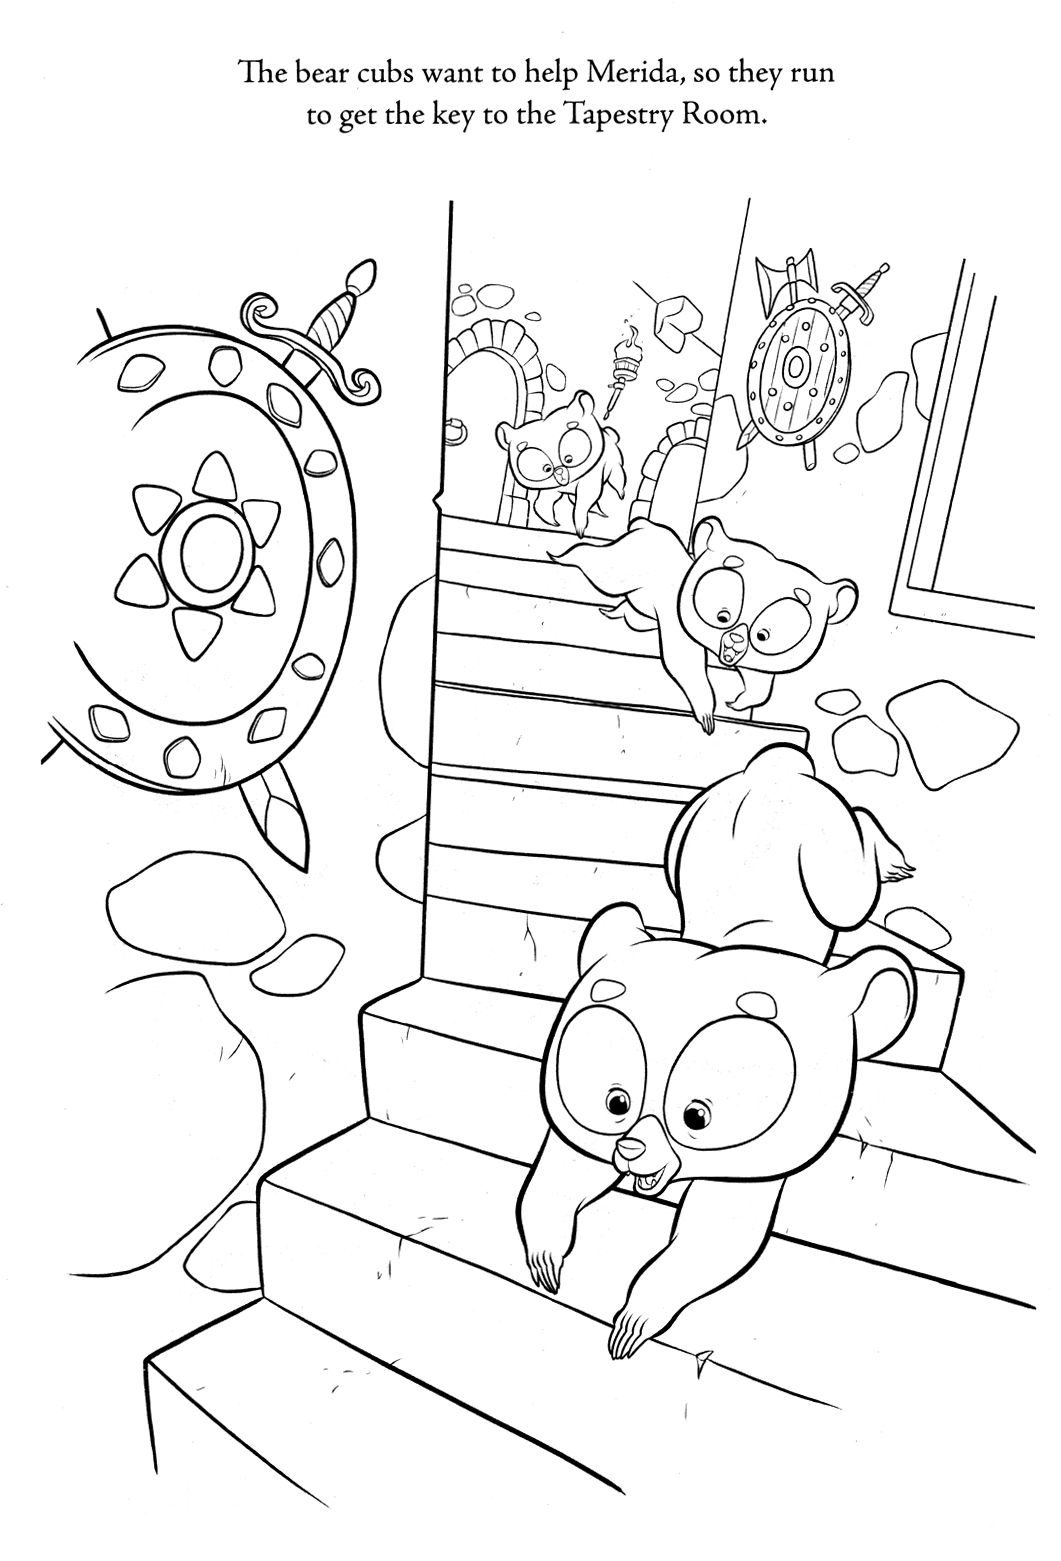 Brave Coloring Pages - Best Coloring Pages For Kids | Coloring books,  Disney coloring pages, Coloring pages